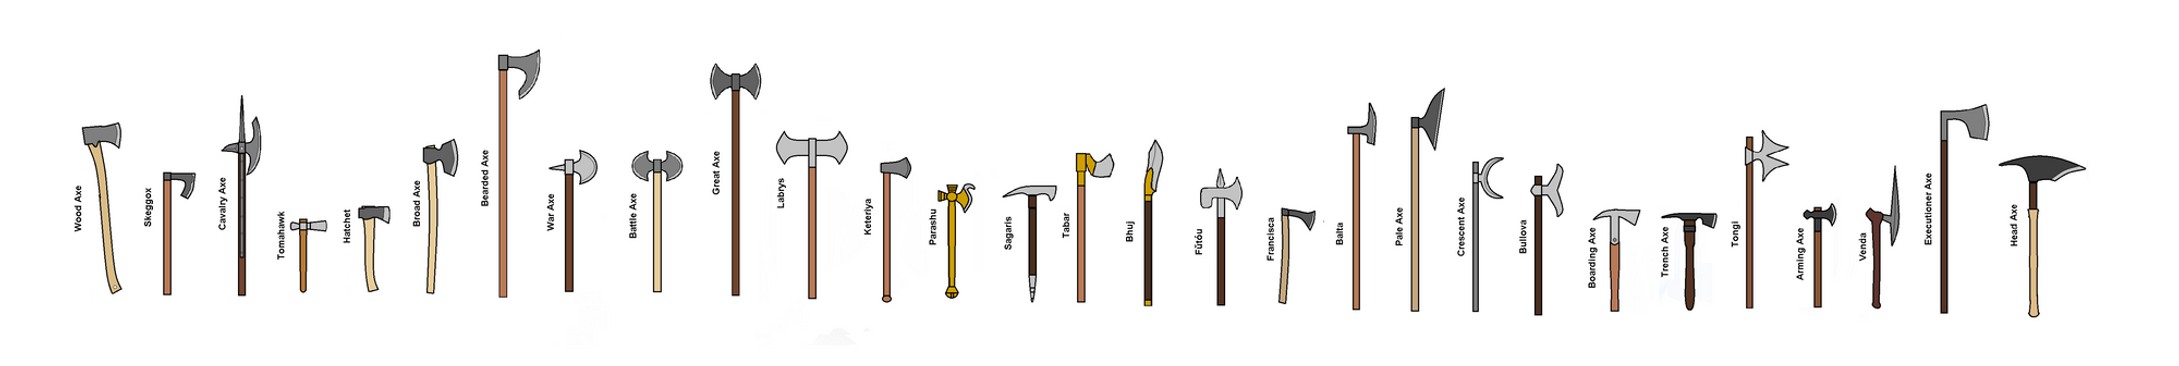 Guide to Axes by MegaBLYSTONE